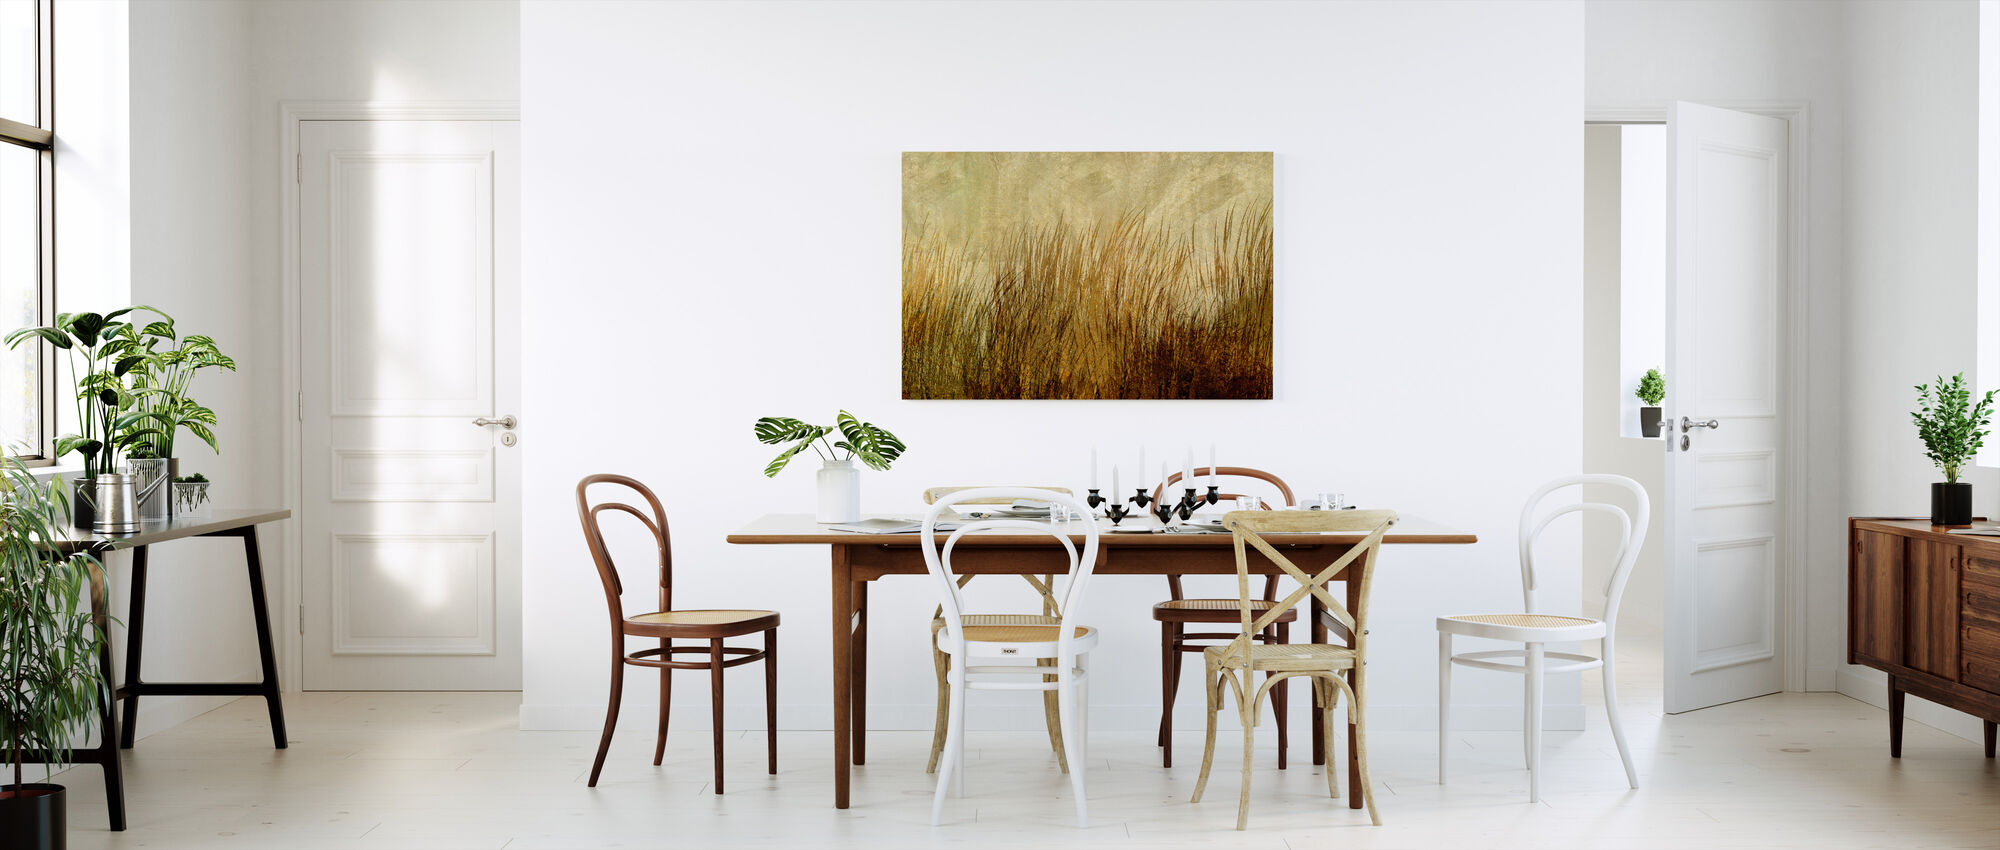 Amber Grass Silhouette - Canvas print - Kitchen